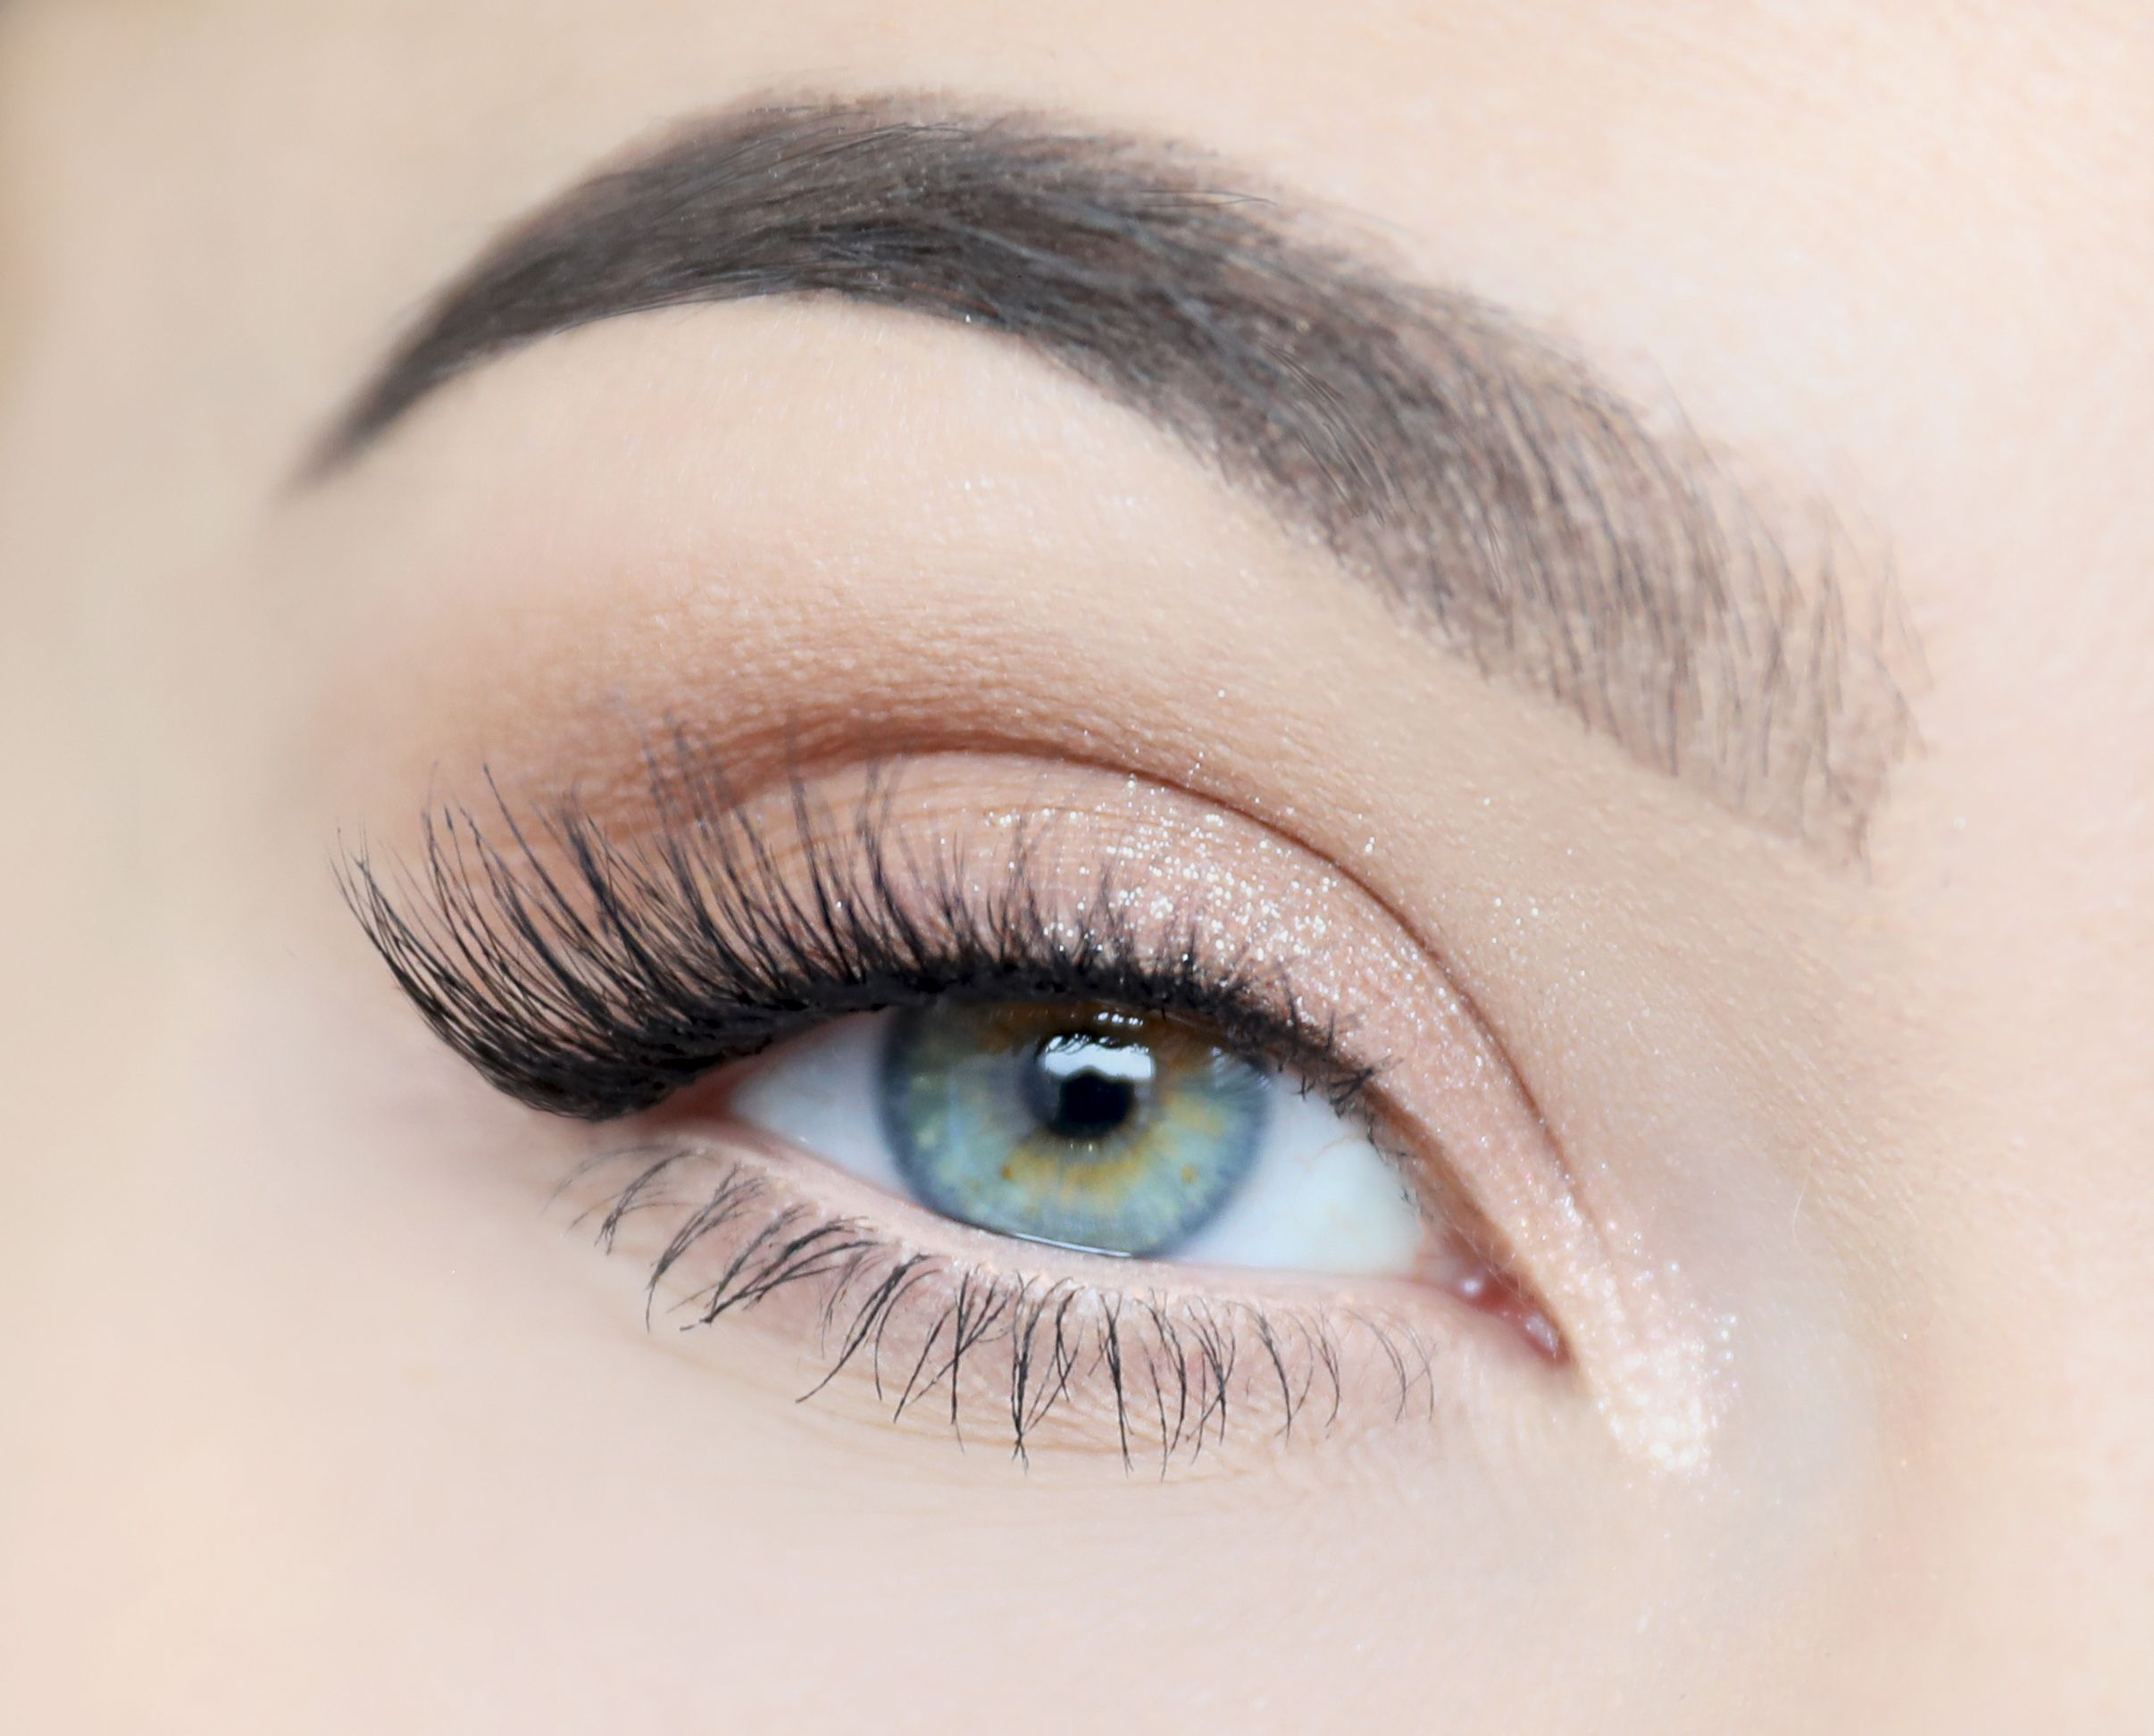 c911b9a8f15 Strip lashes - Perfect Eyelashes: Eyelash extension salons based in  LondonPerfect Eyelashes: Eyelash extension salons based in London